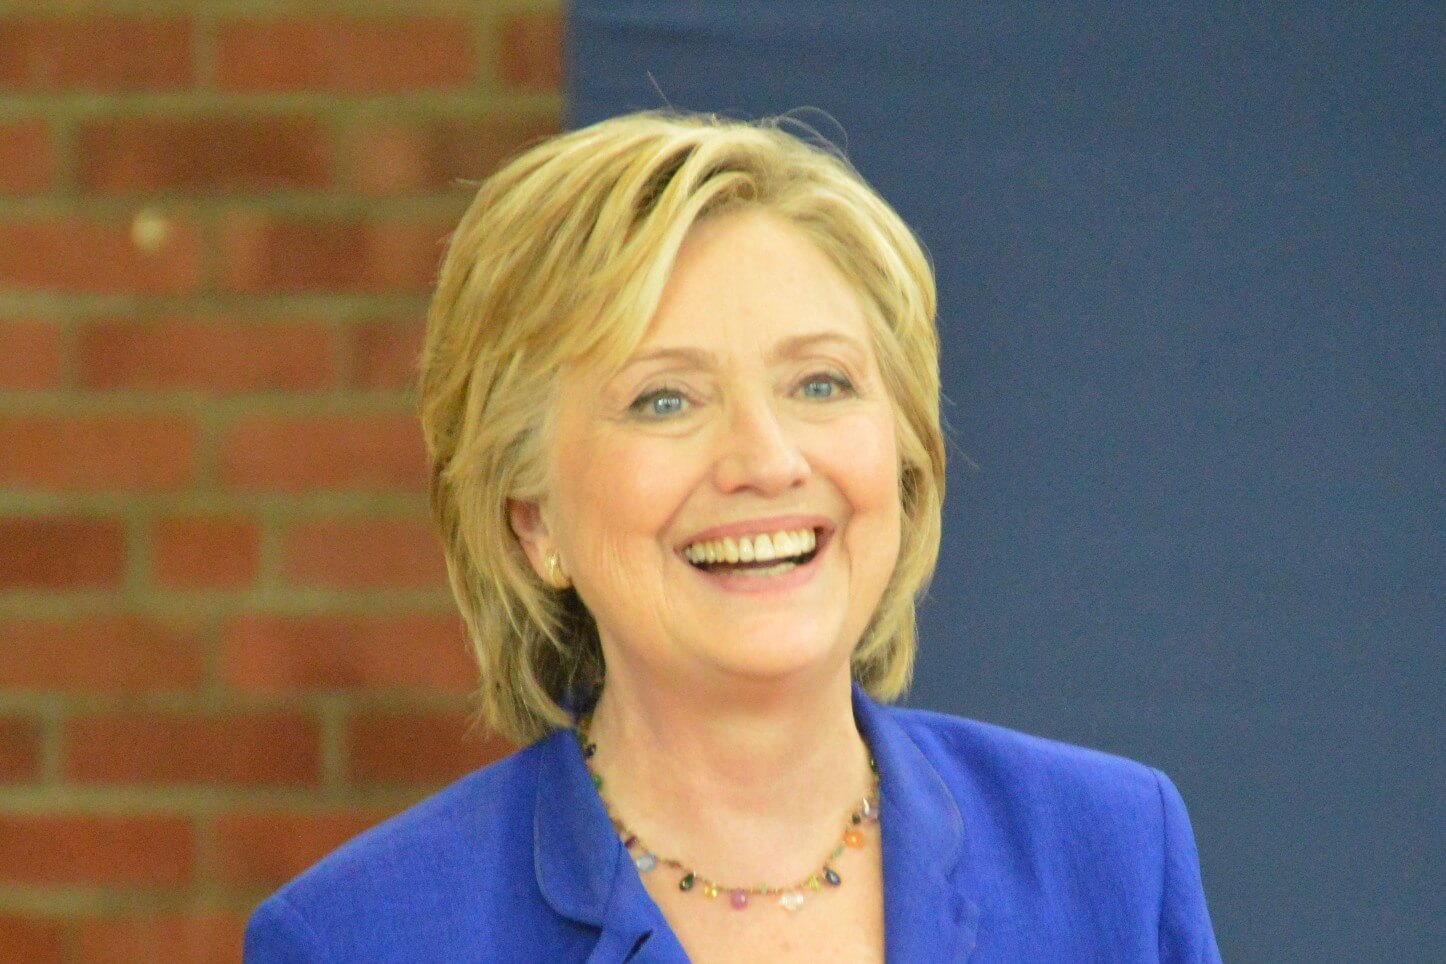 essay on hillary clinton We value excellent academic writing and strive to provide outstanding essay  writing services each and every time you place an order help me write top phd.